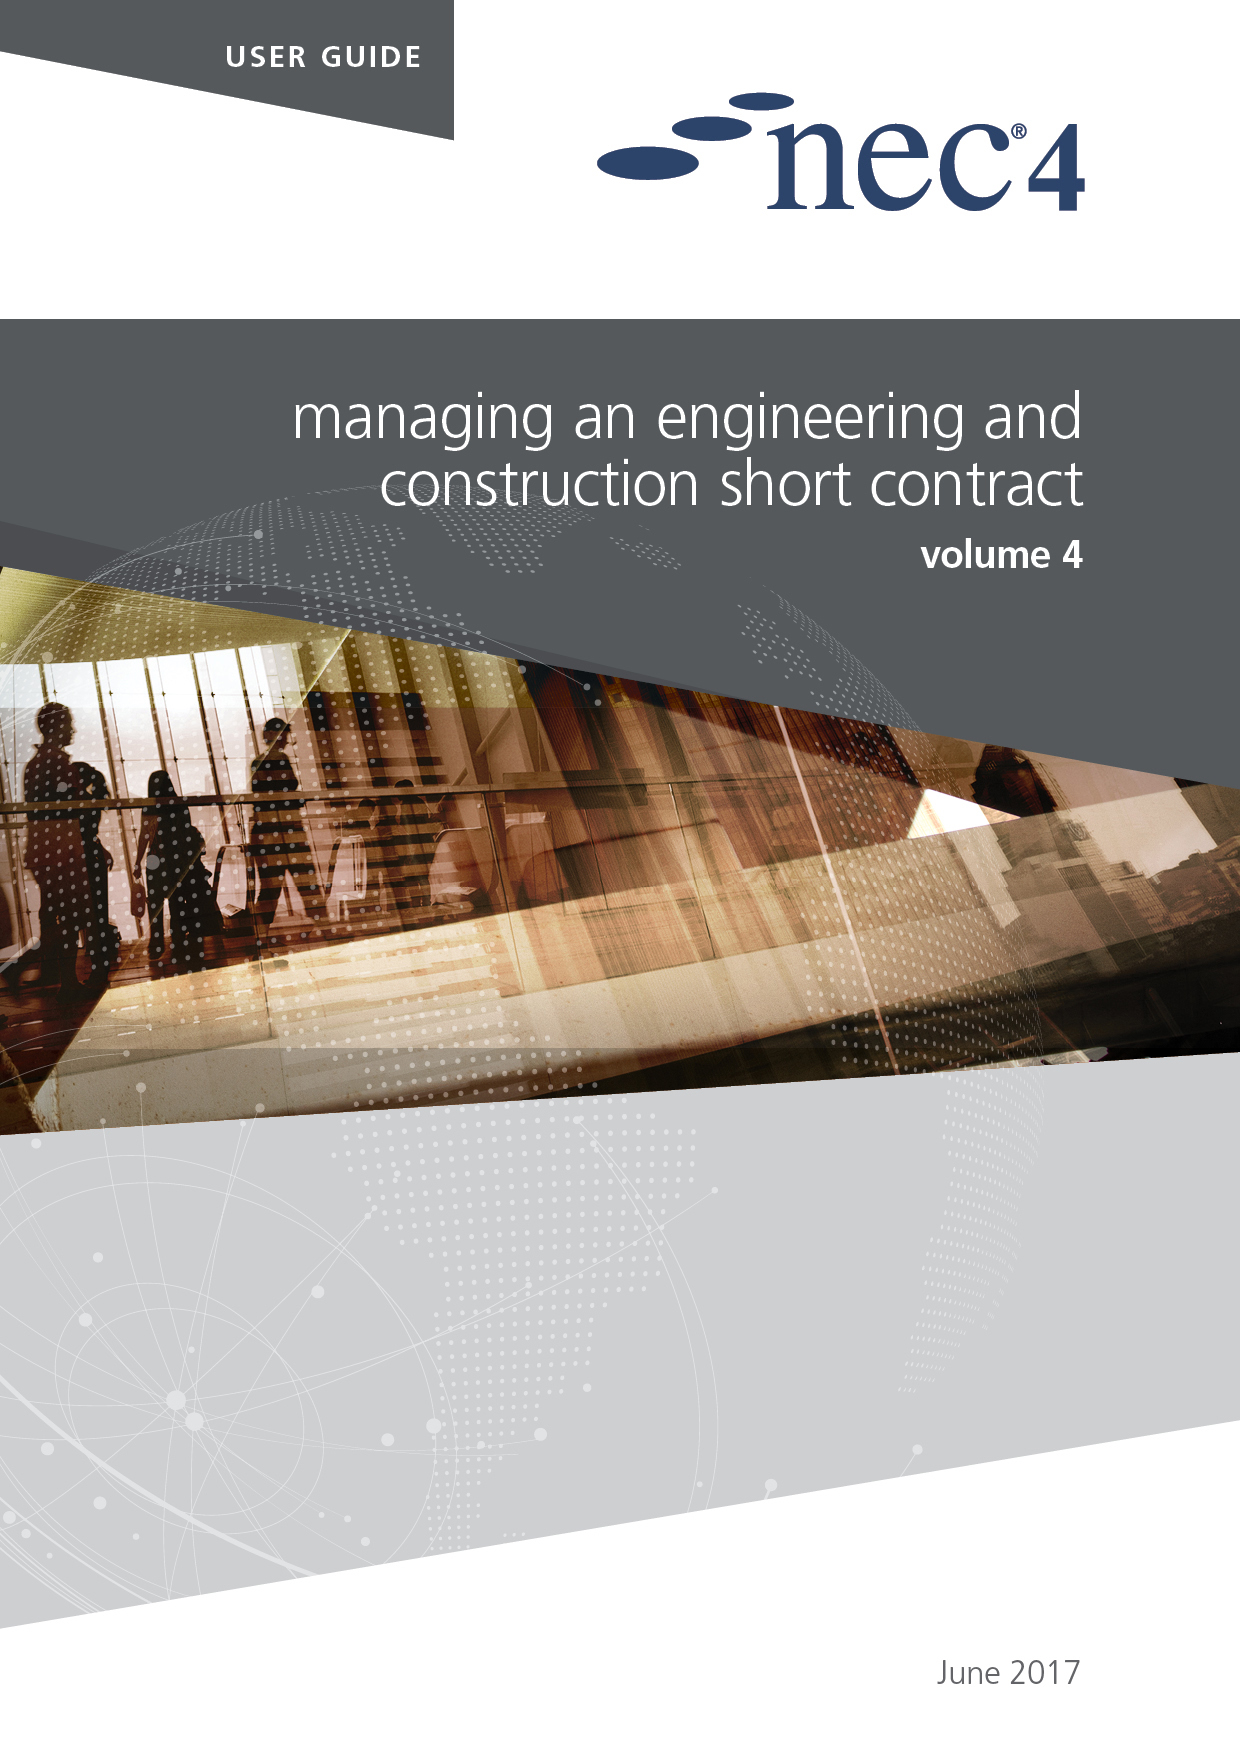 NEC4: Managing an Engineering and Construction Short Contract